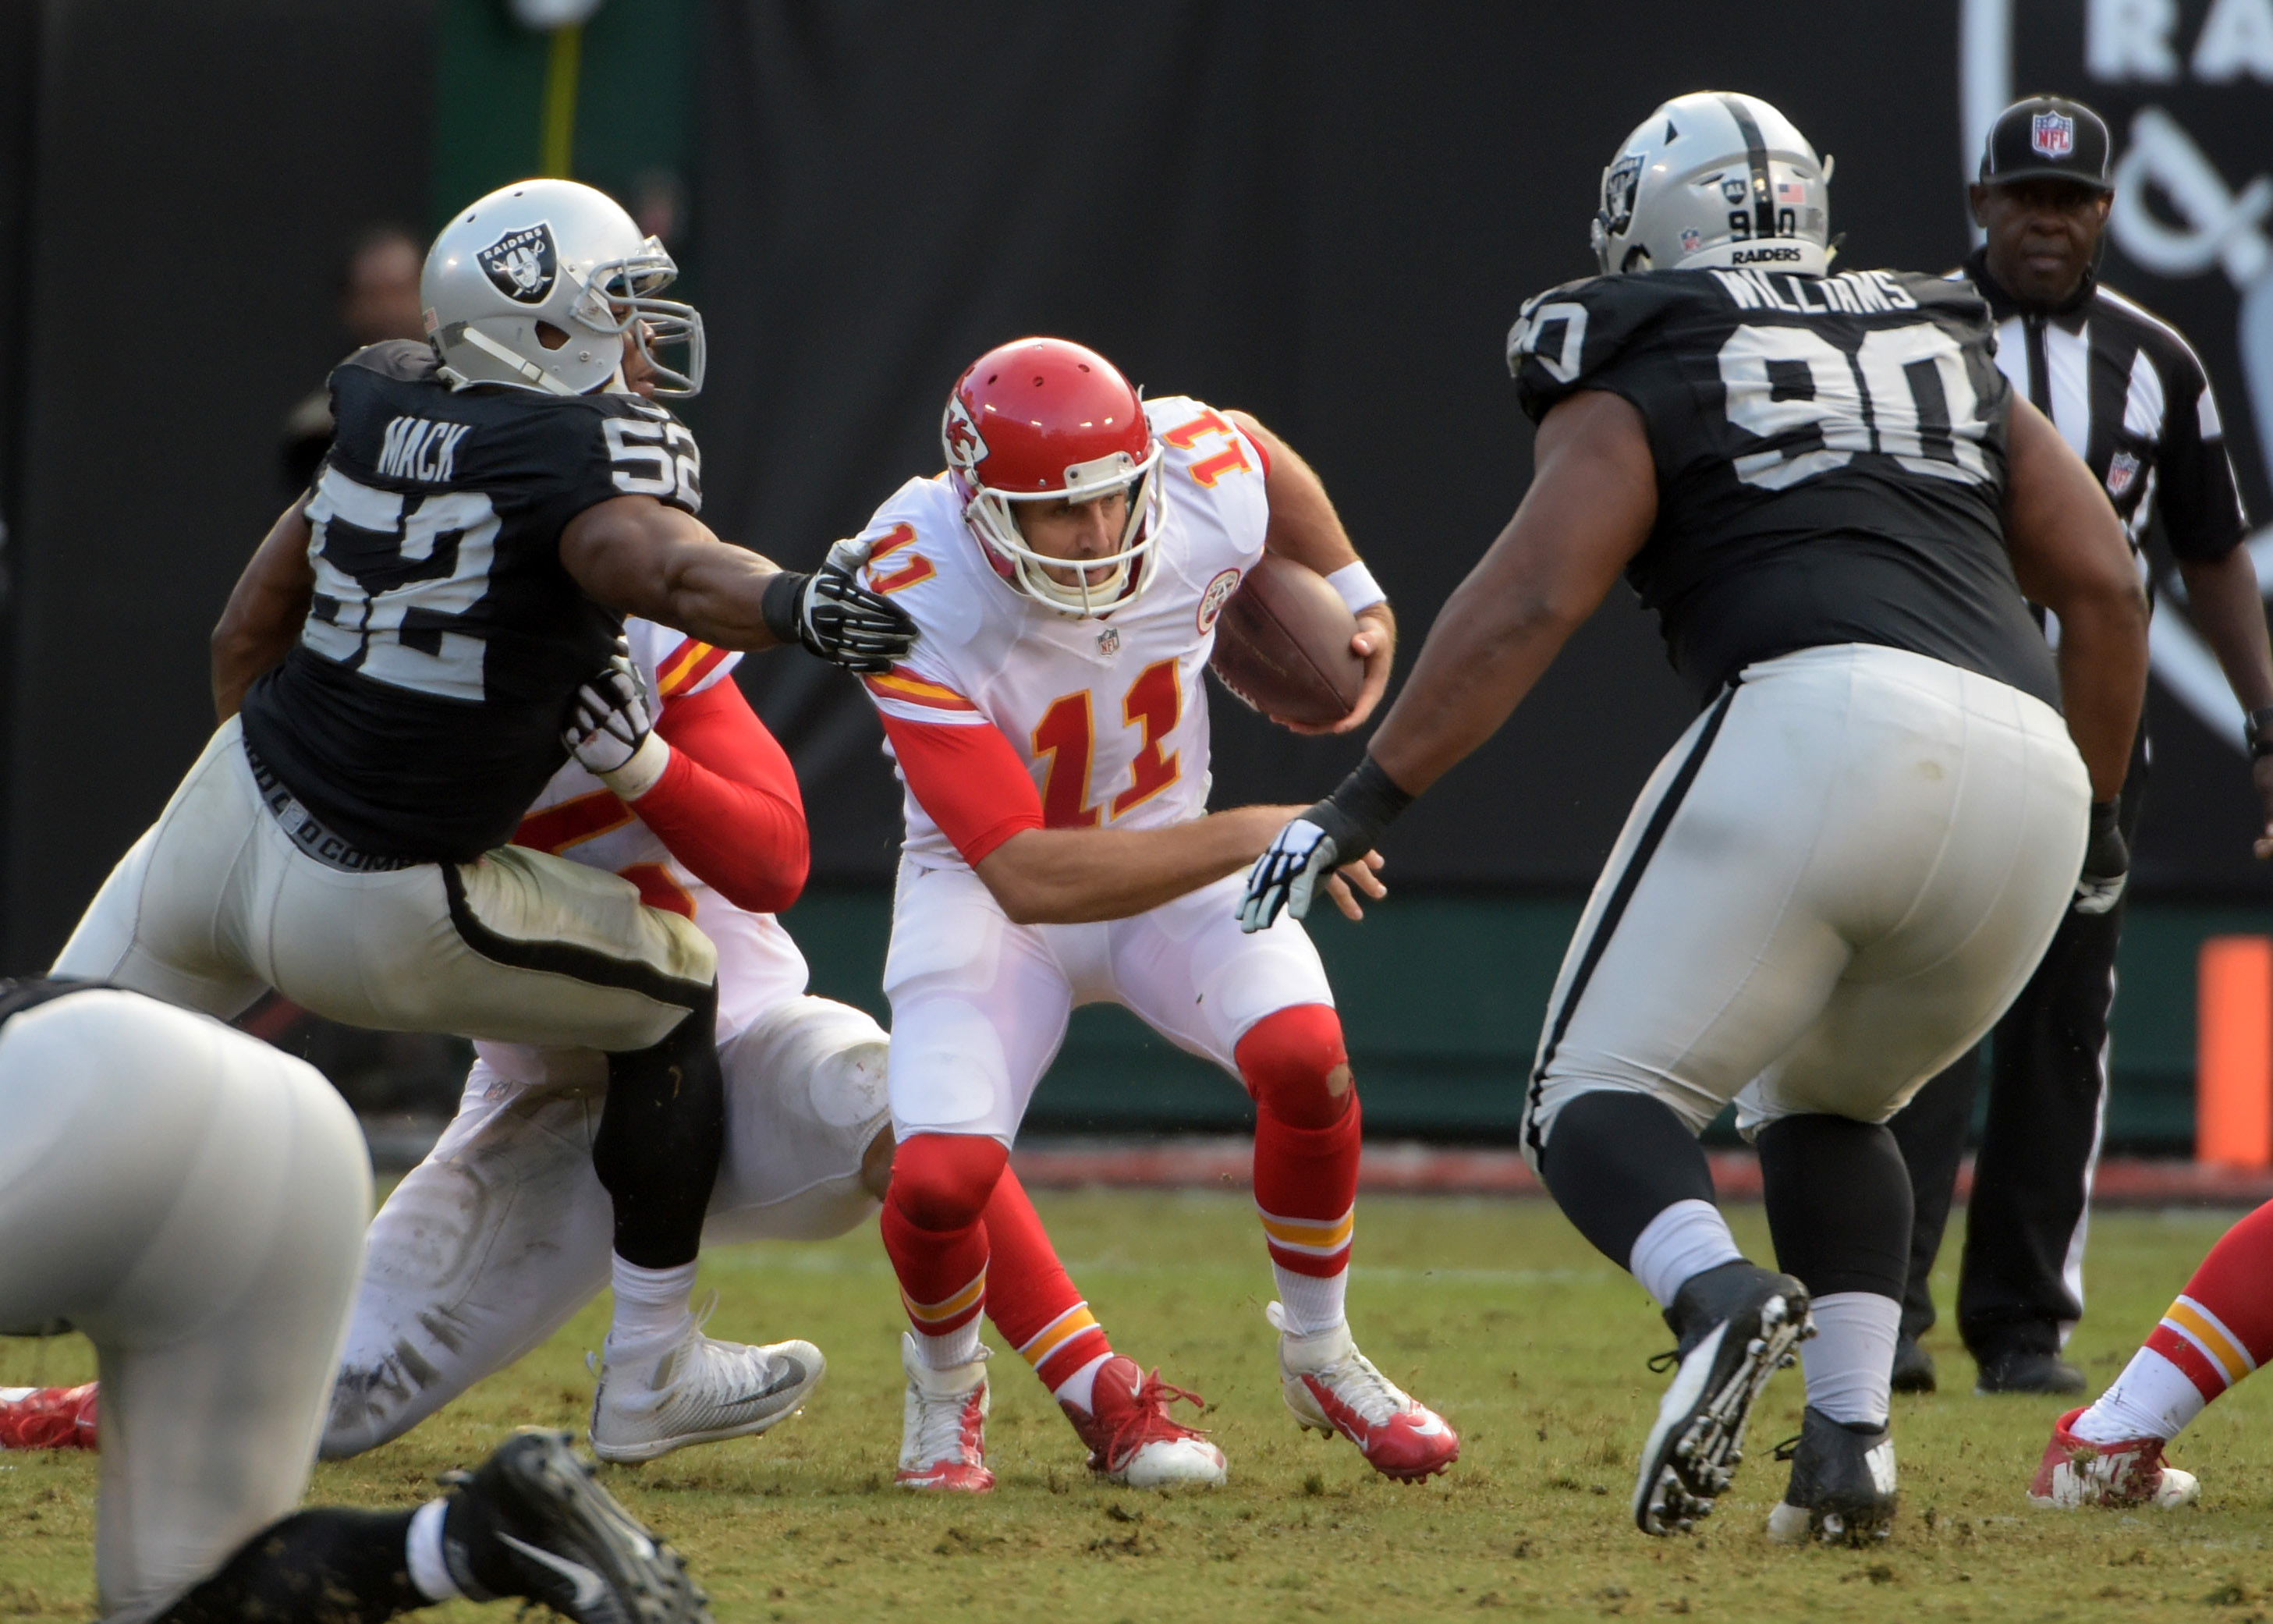 8985568-nfl-kansas-city-chiefs-at-oakland-raiders